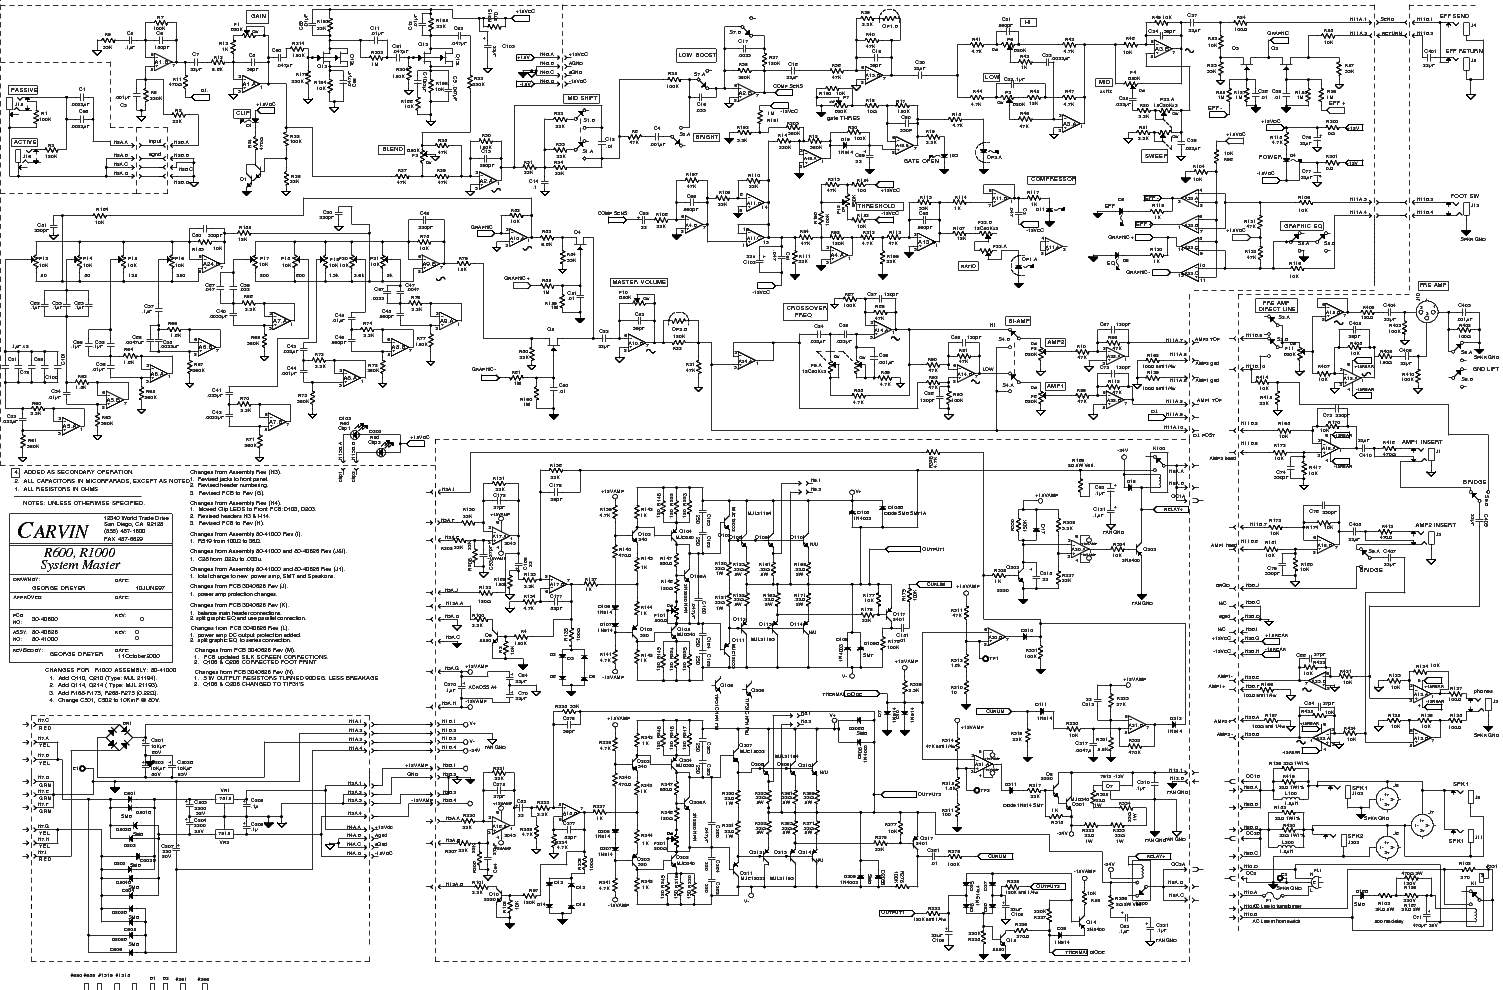 hagstrom guitar wiring diagram ernie ball wiring diagram wiring diagram